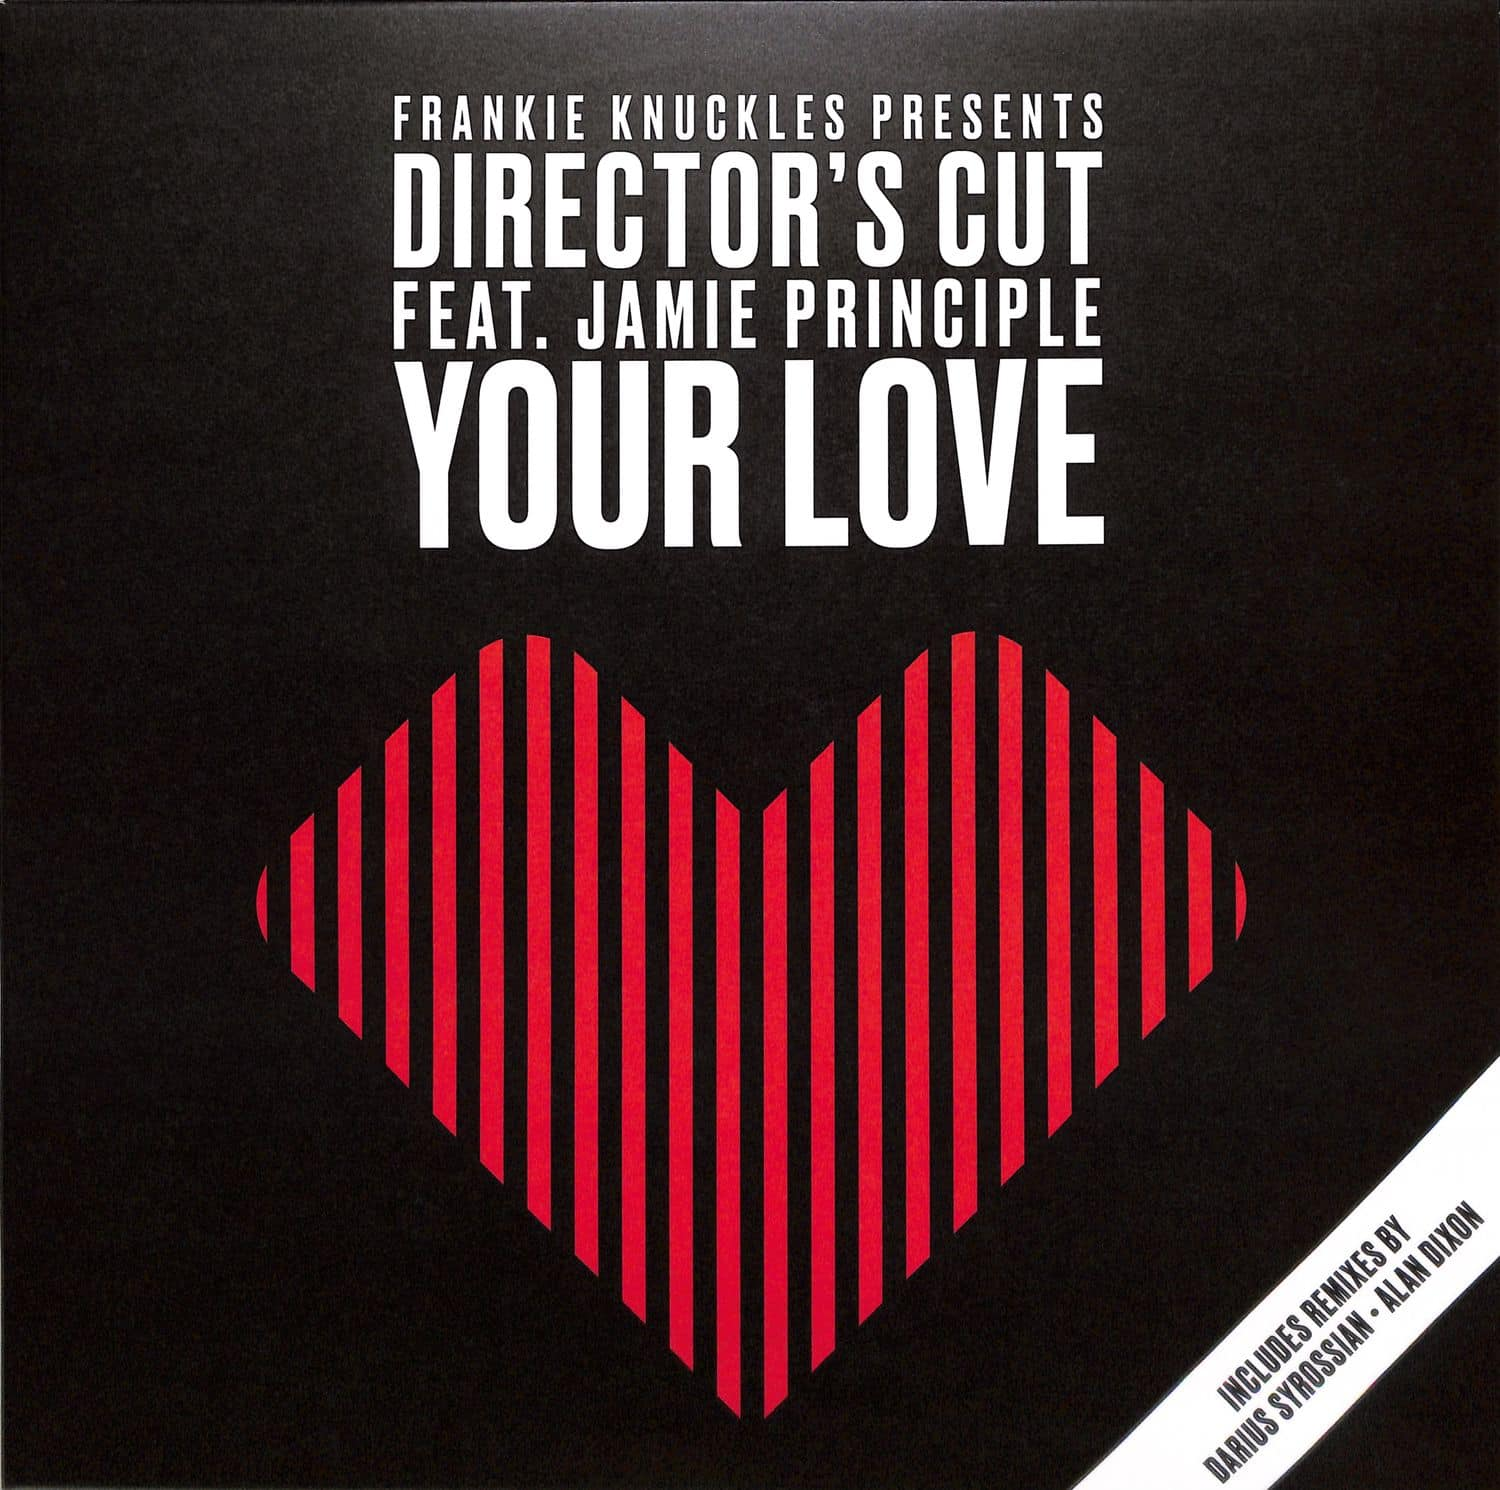 Frankie Knuckles pres Directors Cut Featuring Jamie Principle - YOUR LOVE